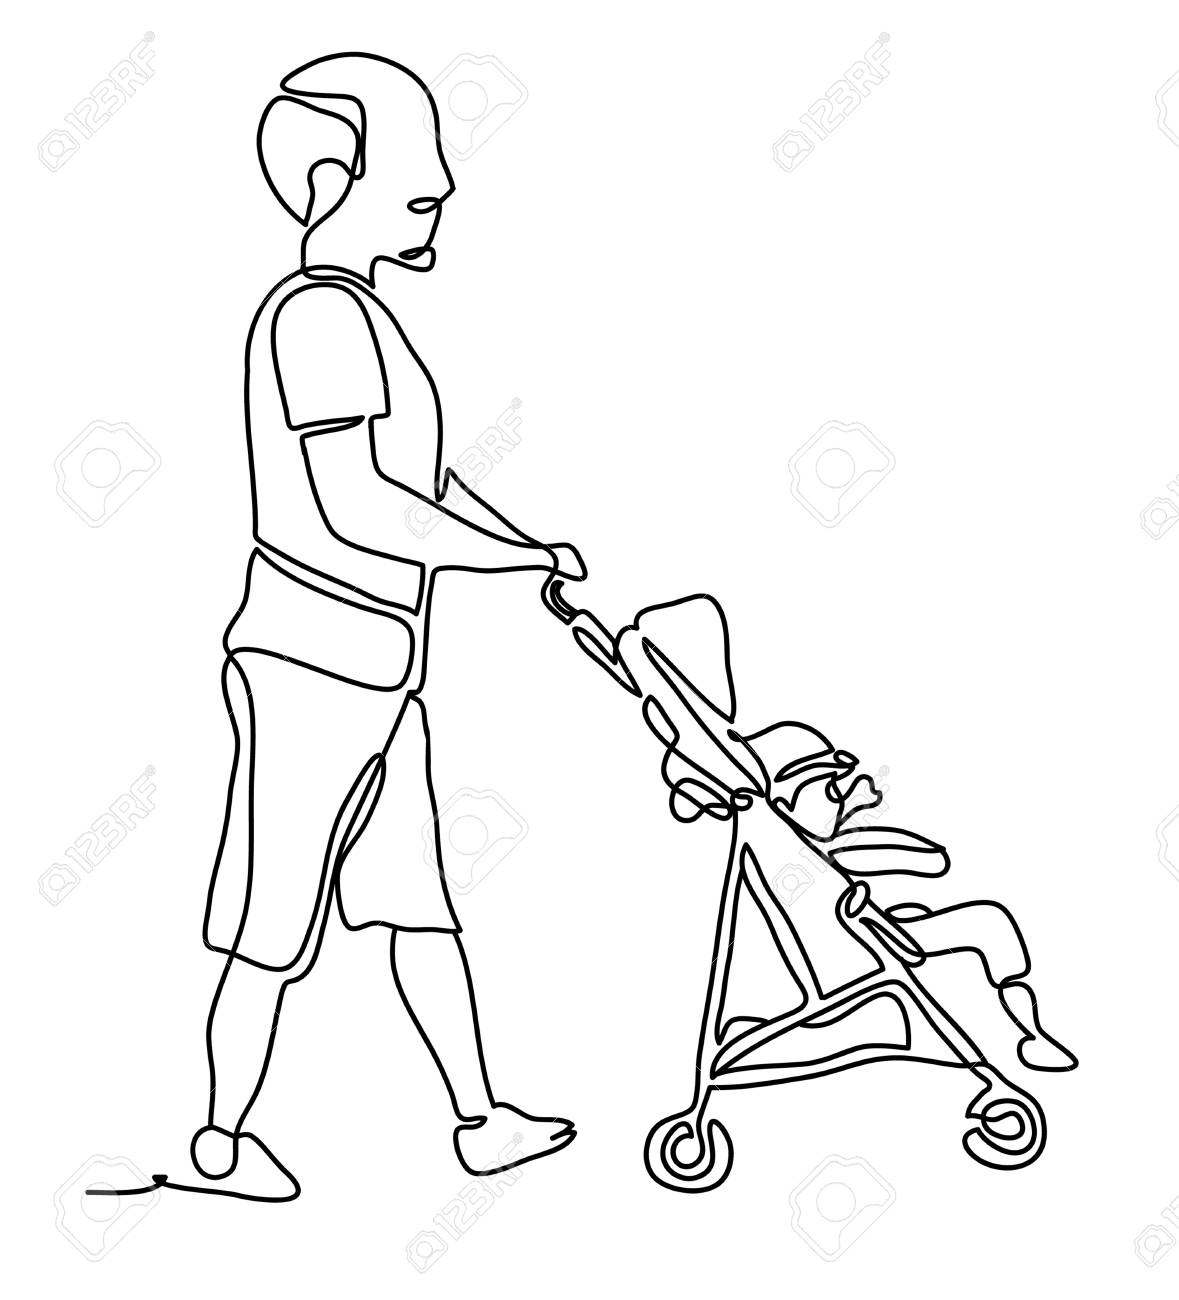 Line Drawing Of People Pushing Wiring Diagrams Dcac Solid State Relay Or Ssr Del30008 Full Length Portrait A Male Baby Stroller Isolated Rh 123rf Com Art